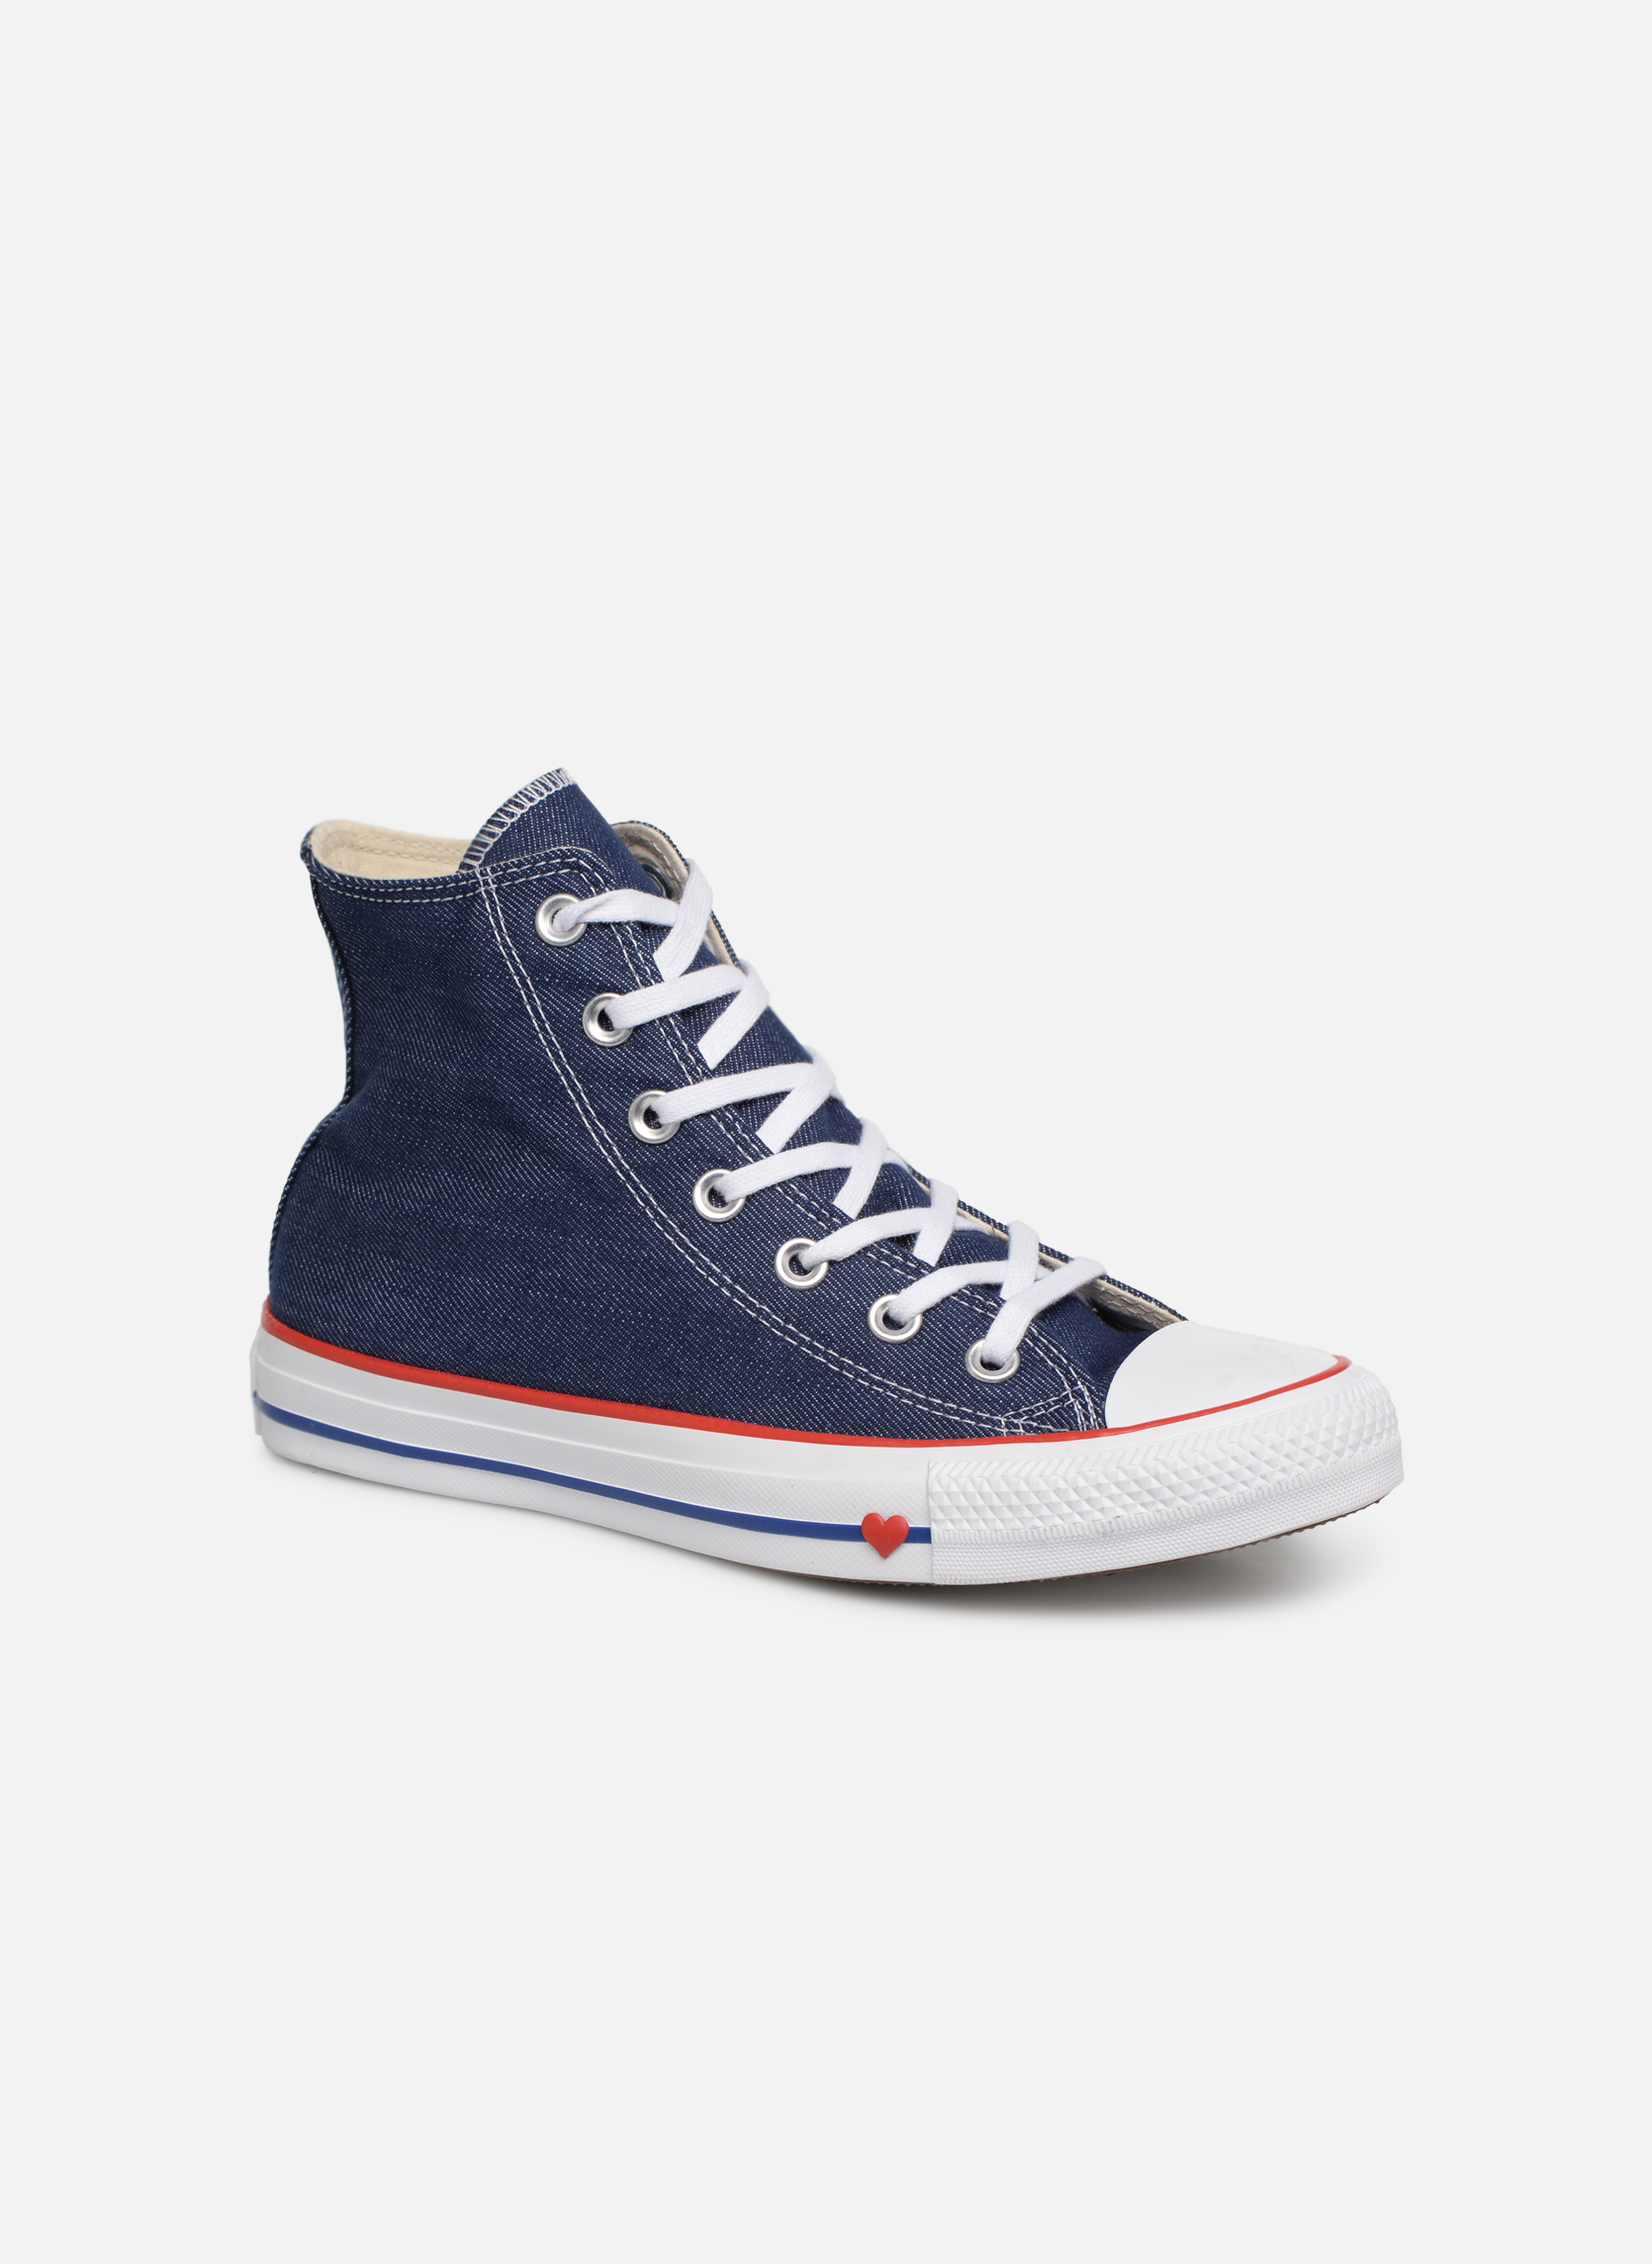 Sneakers Chuck Taylor All Star Sucker for Love Hi by ConverseConverseBlauwPaar schoenen - Sneakers88875642940142Textiel